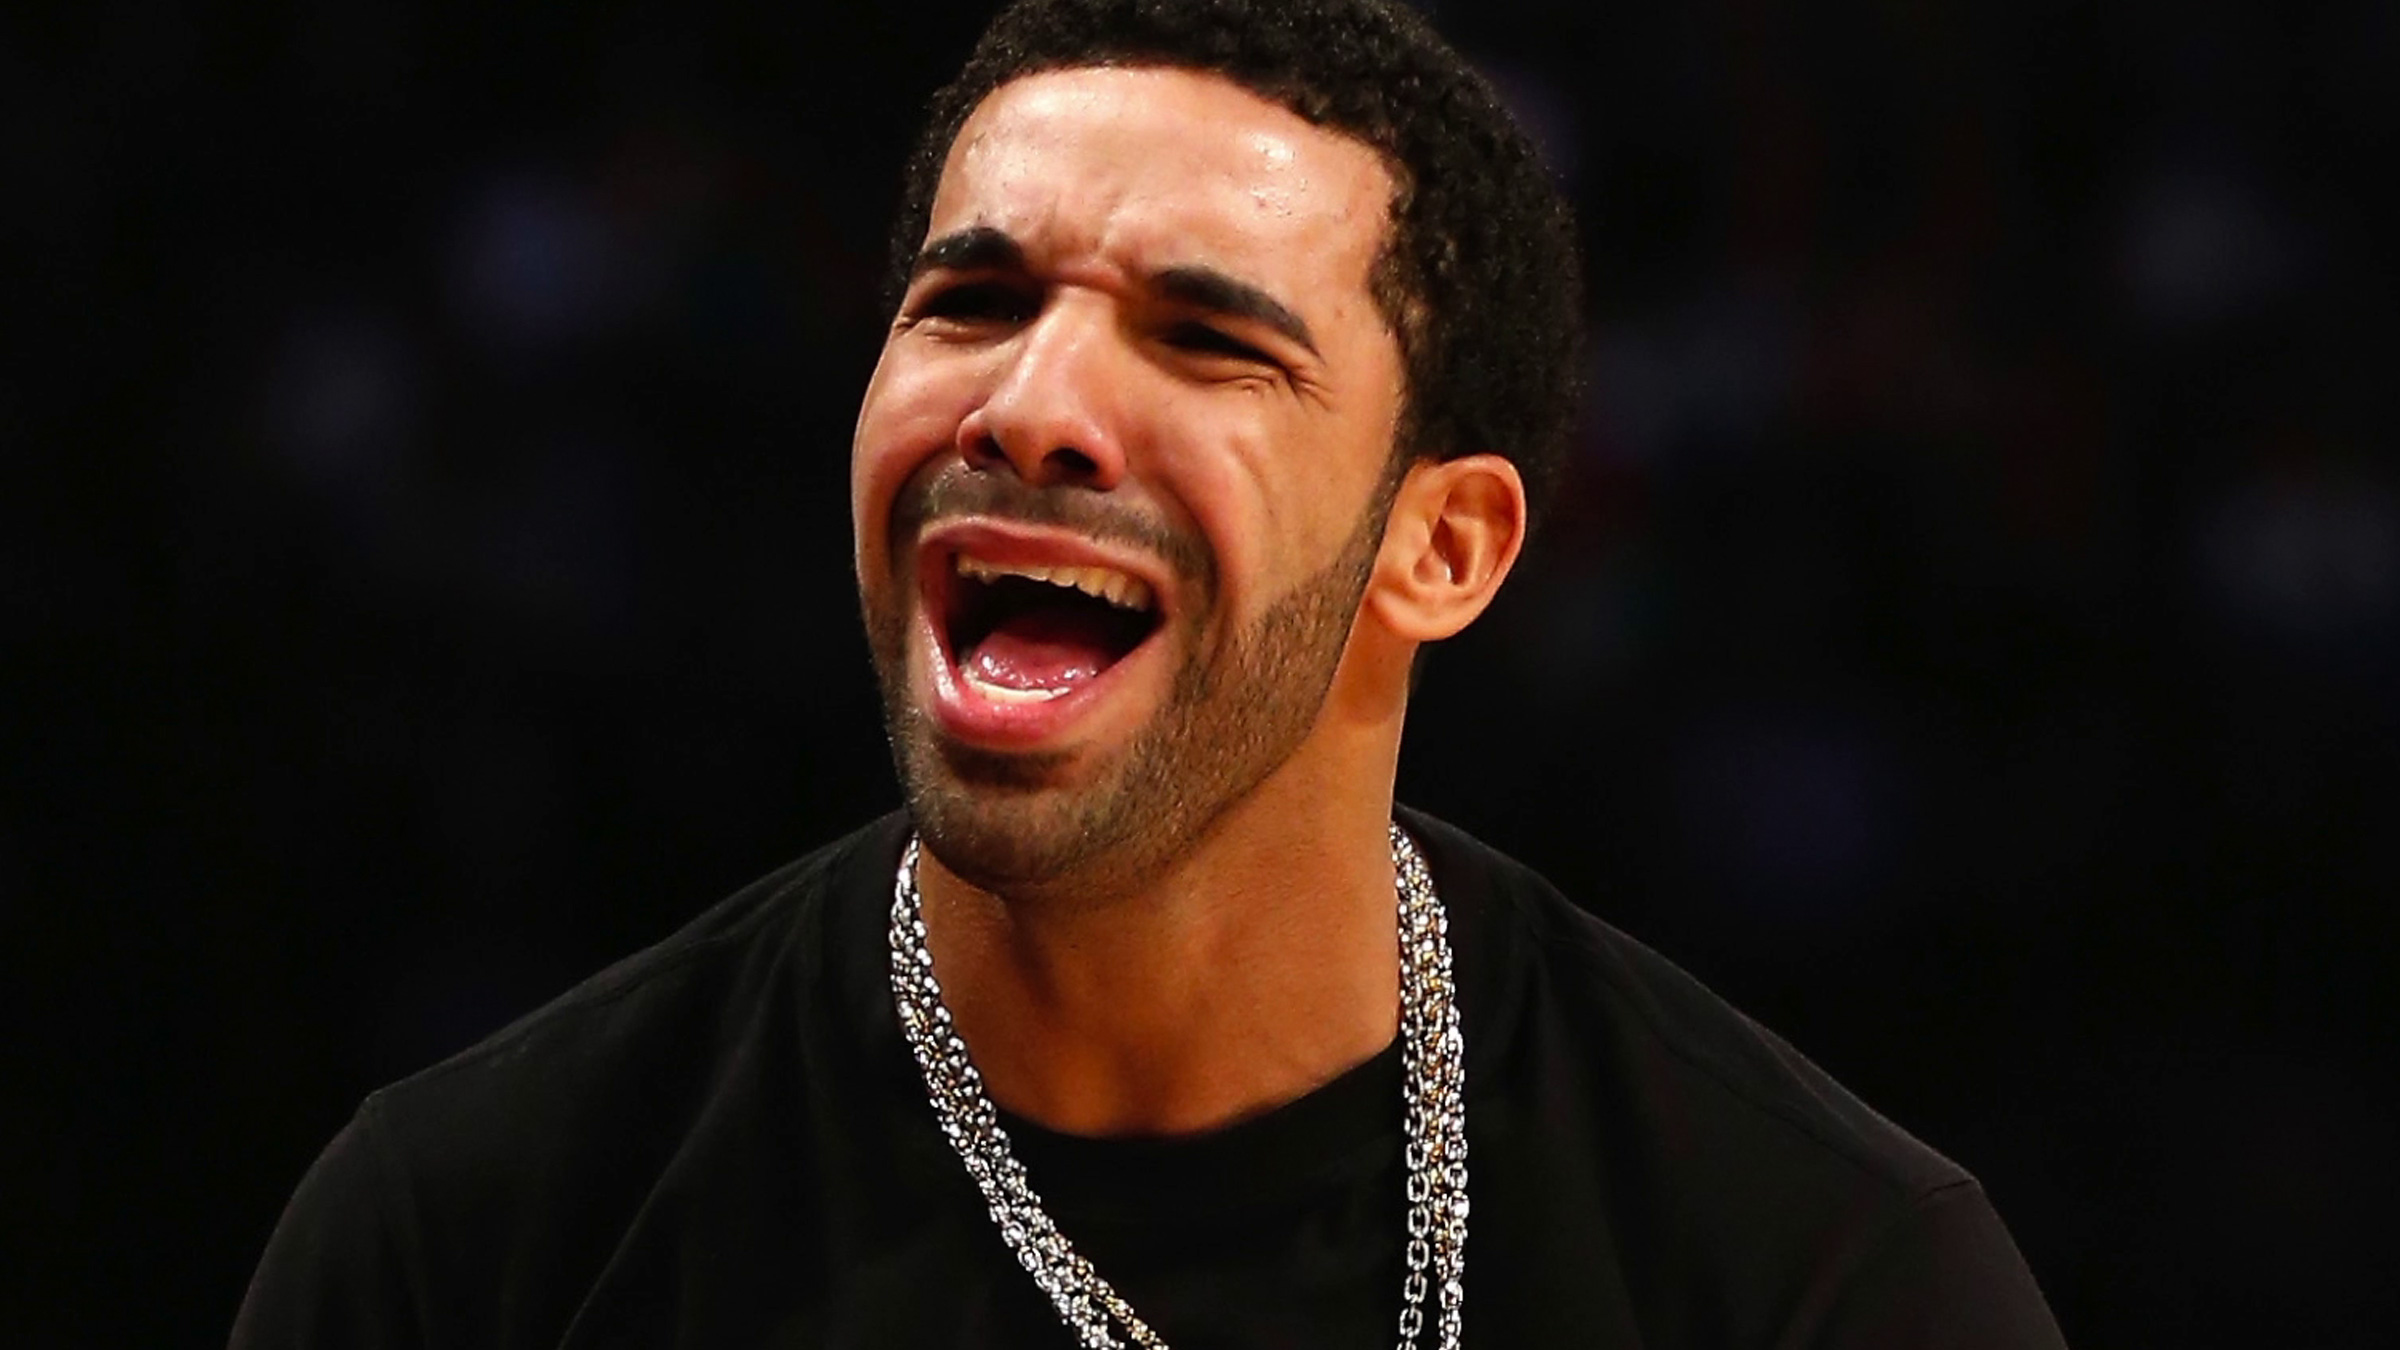 Teaser drake sad face